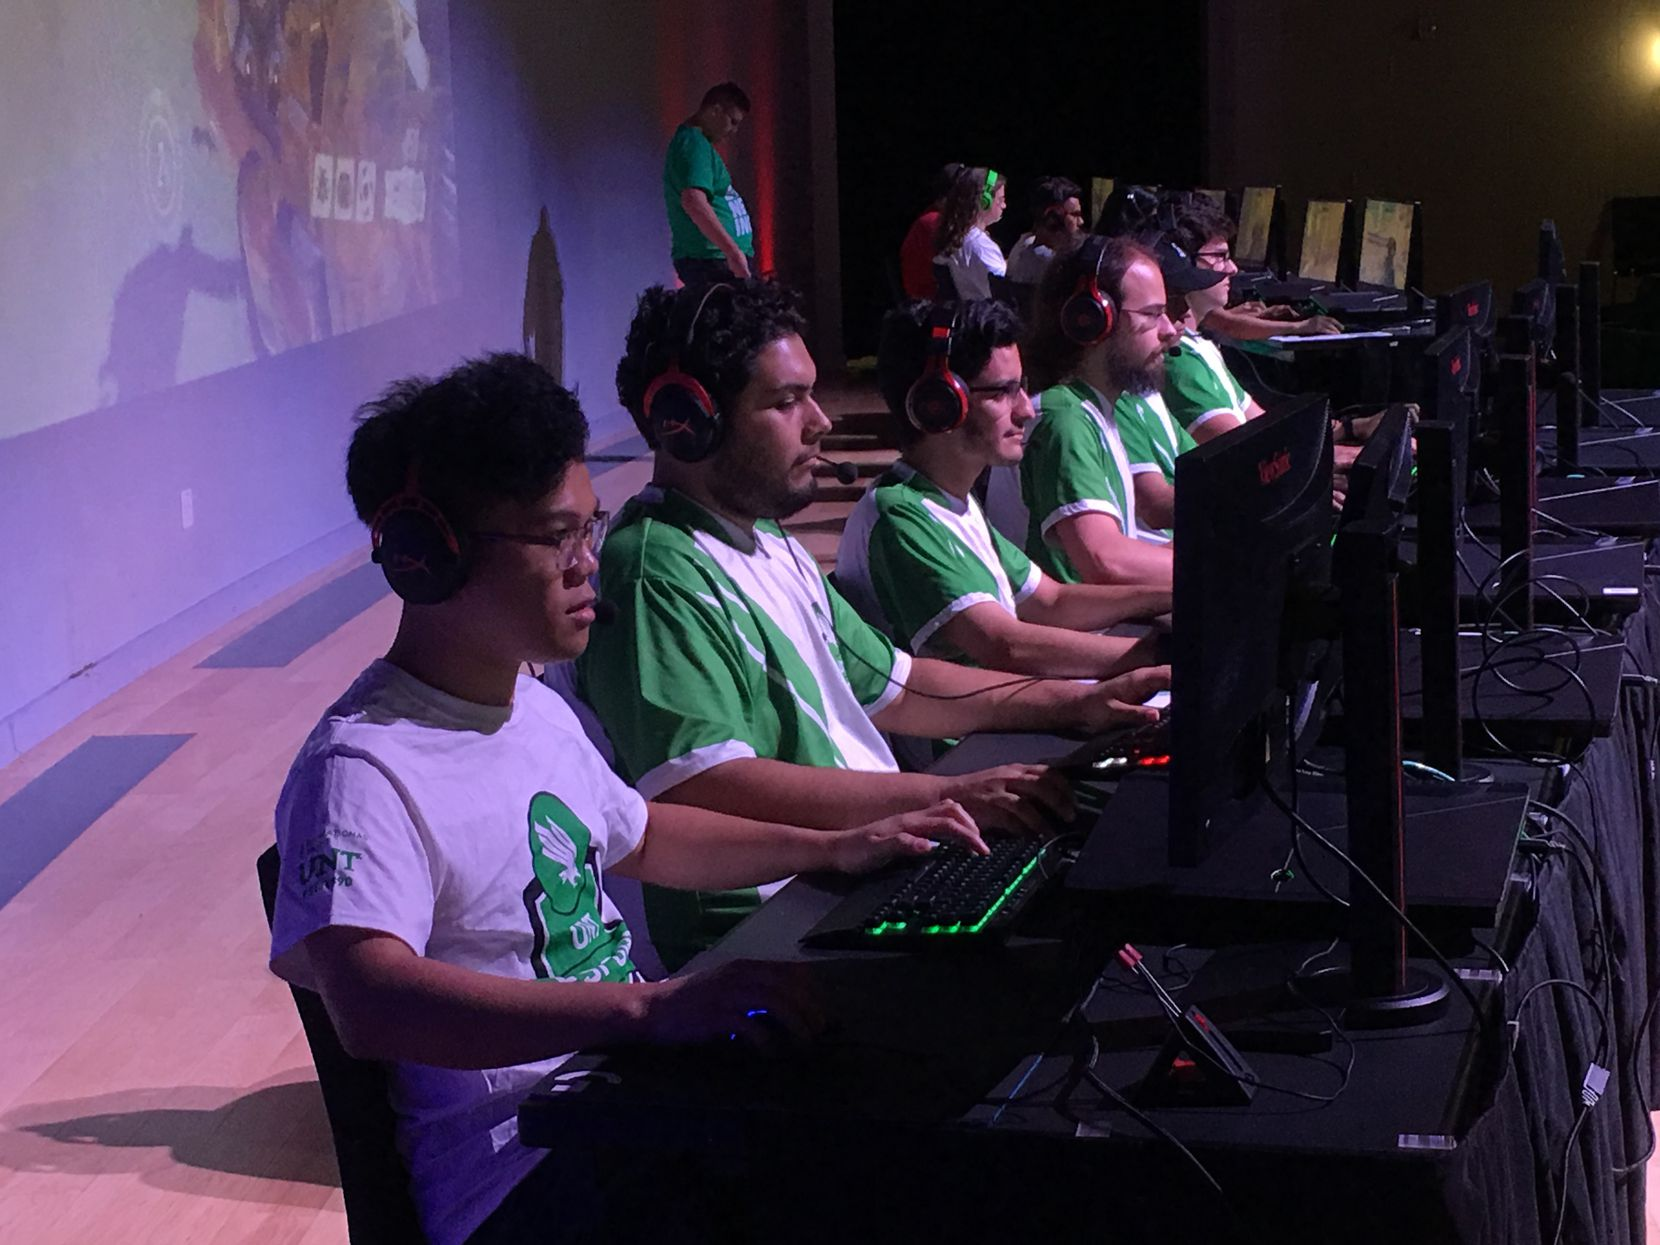 The UNT Overwatch team has practiced and competed remotely during the fall semester.